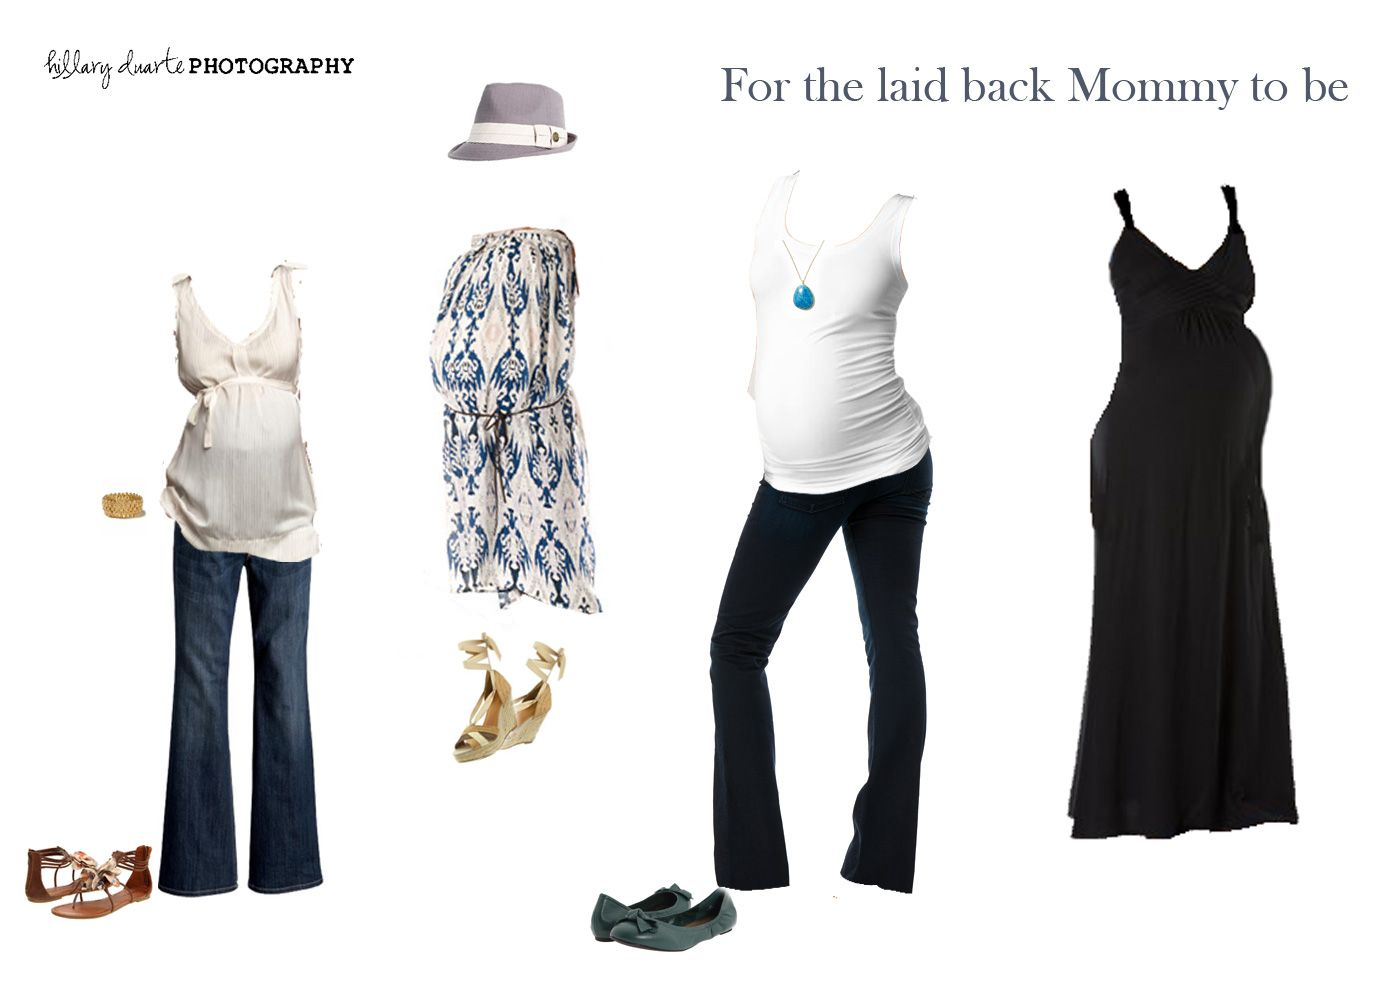 Outfit ideas for your maternity photo session